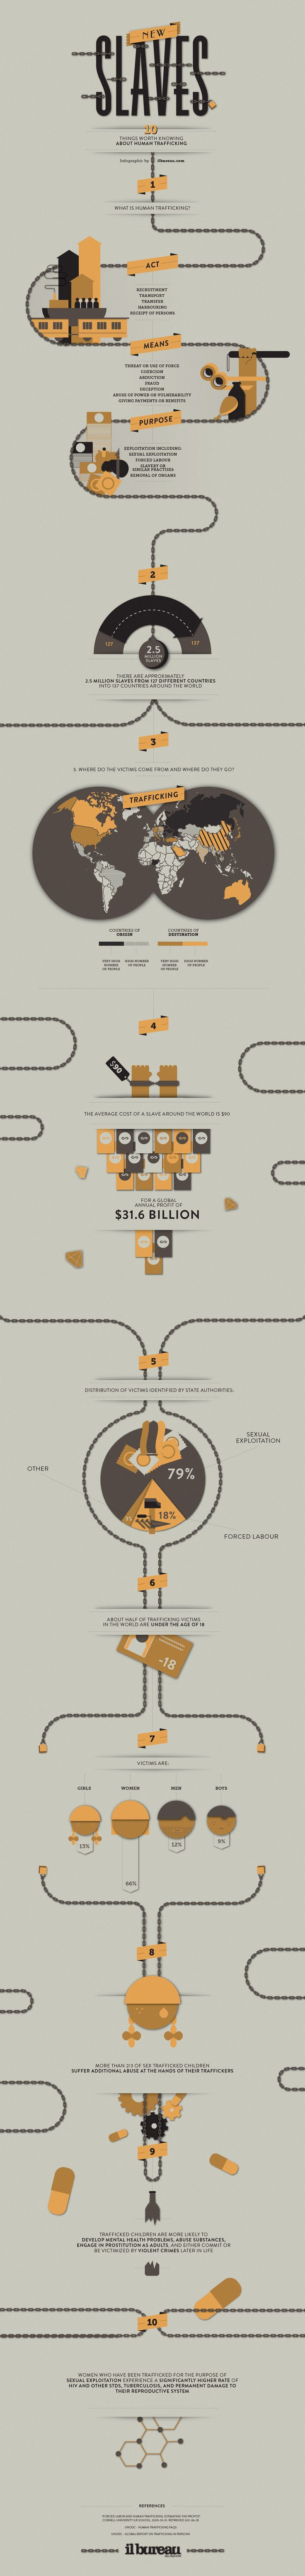 Unique Infographic Design, 10 Things Worth Knowing About Human Trafficking #Infographic #Design (http://www.pinterest.com...) #infographics